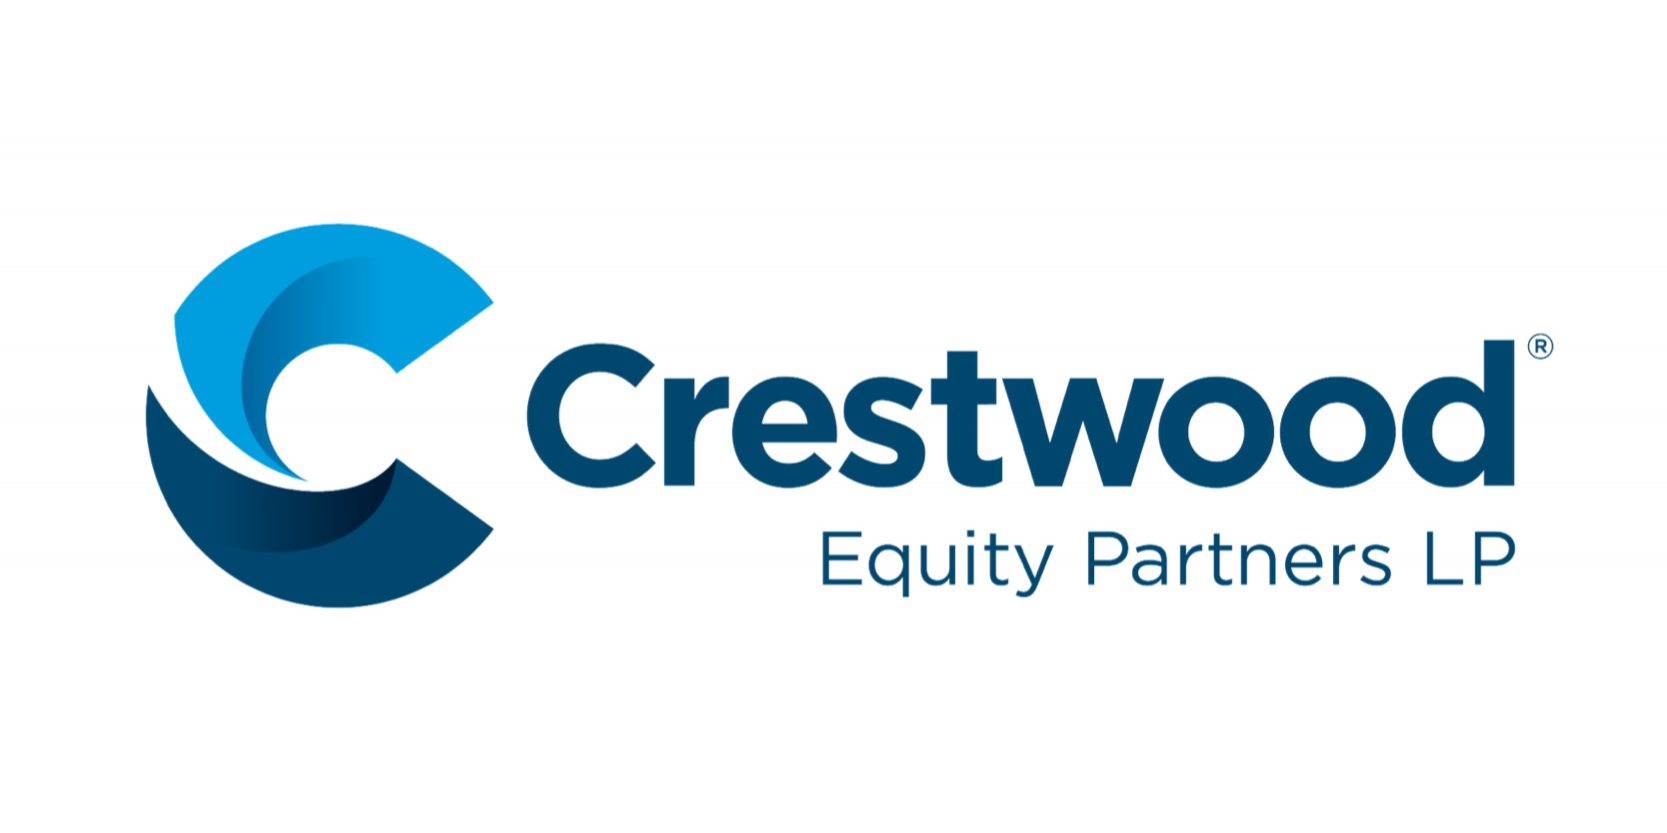 mid_america_lgbt_chamber-logos-crestwood_equity_partners